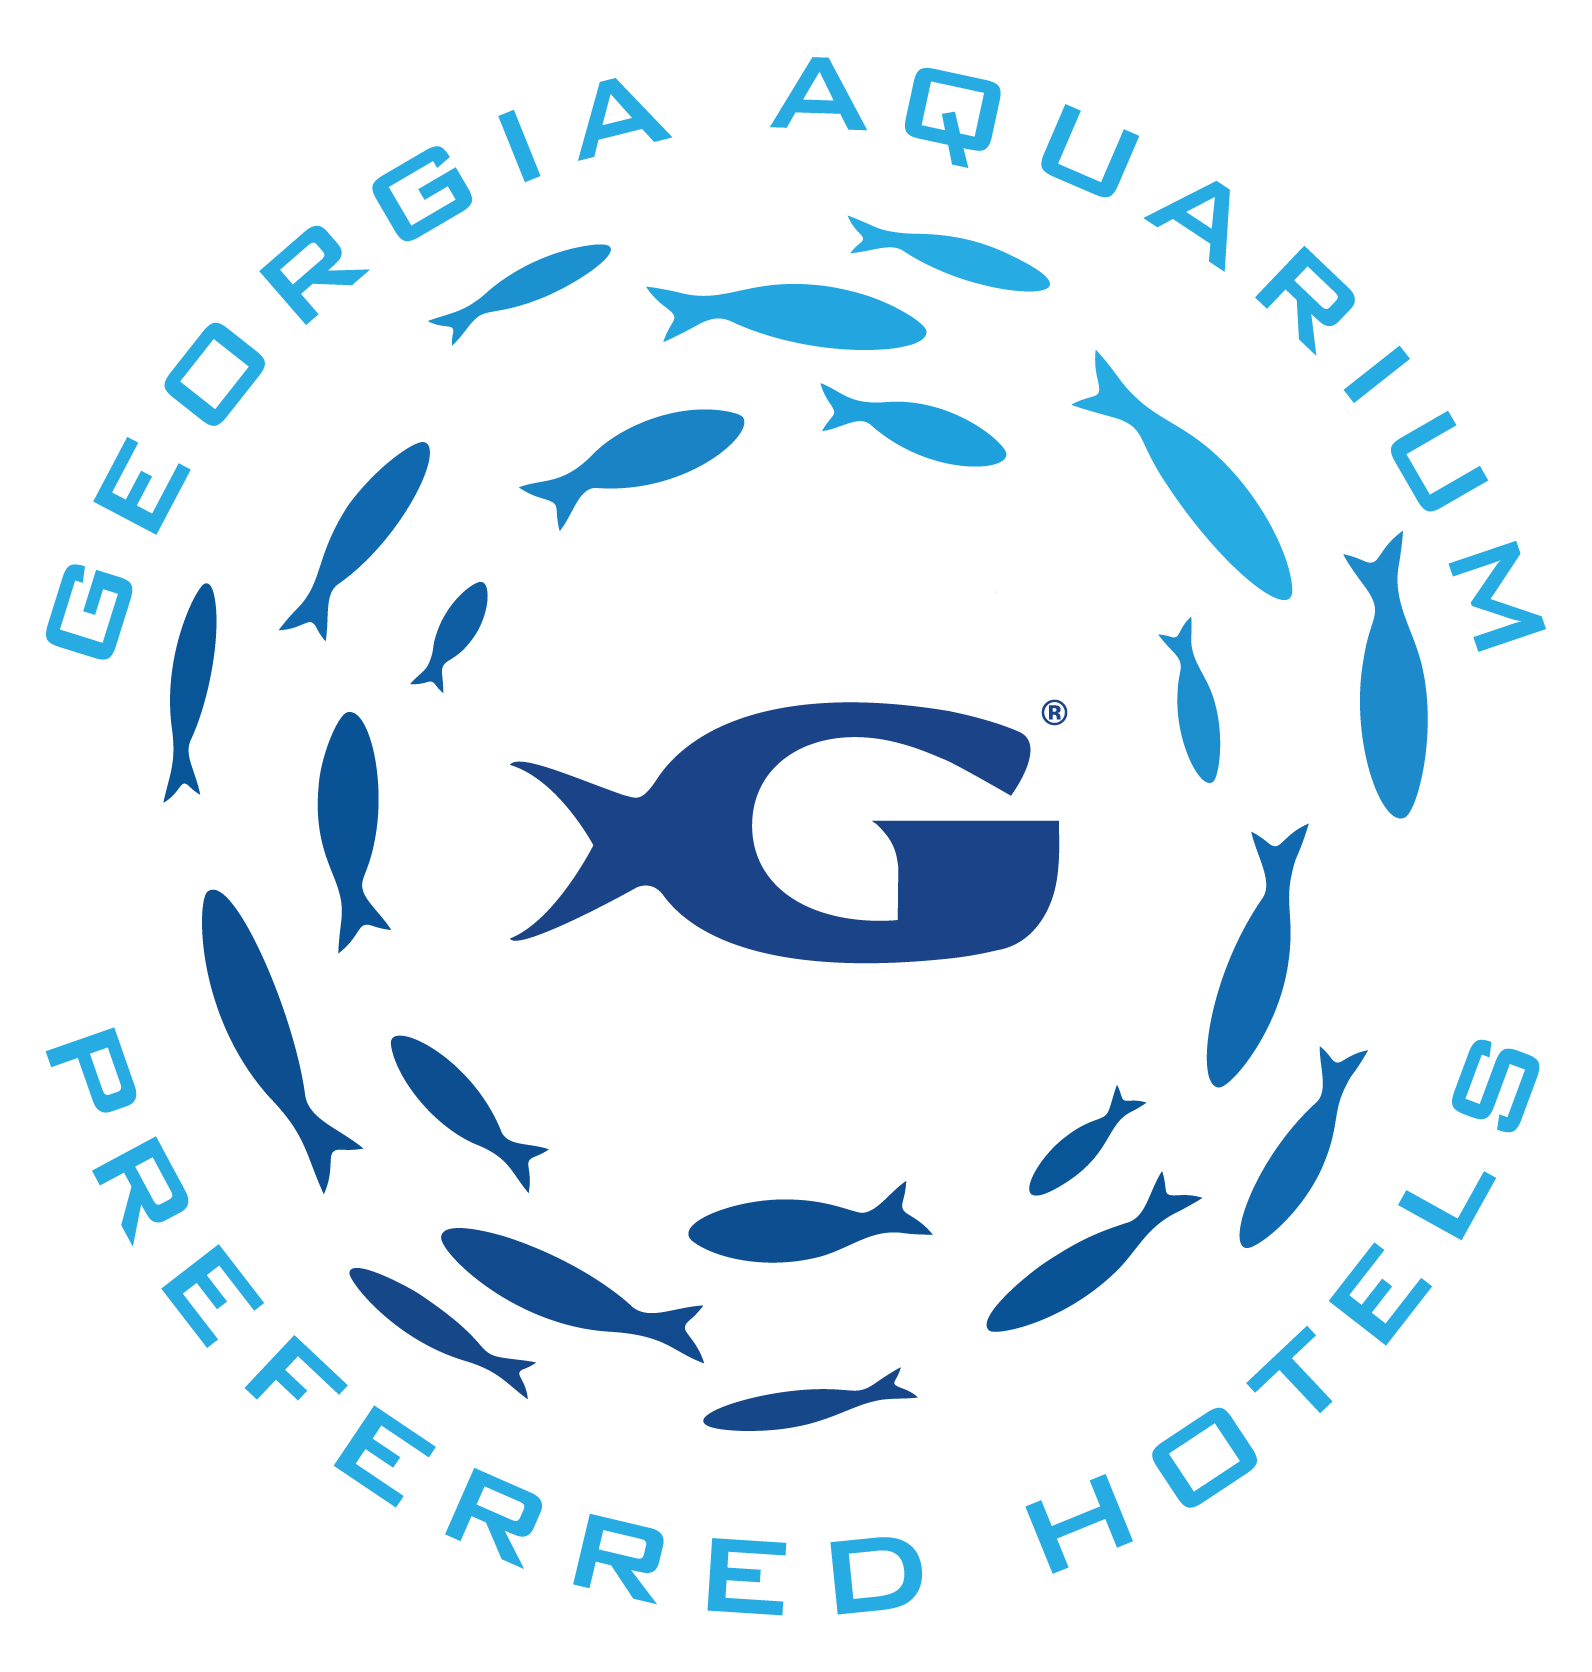 Preferred Hotel Logo